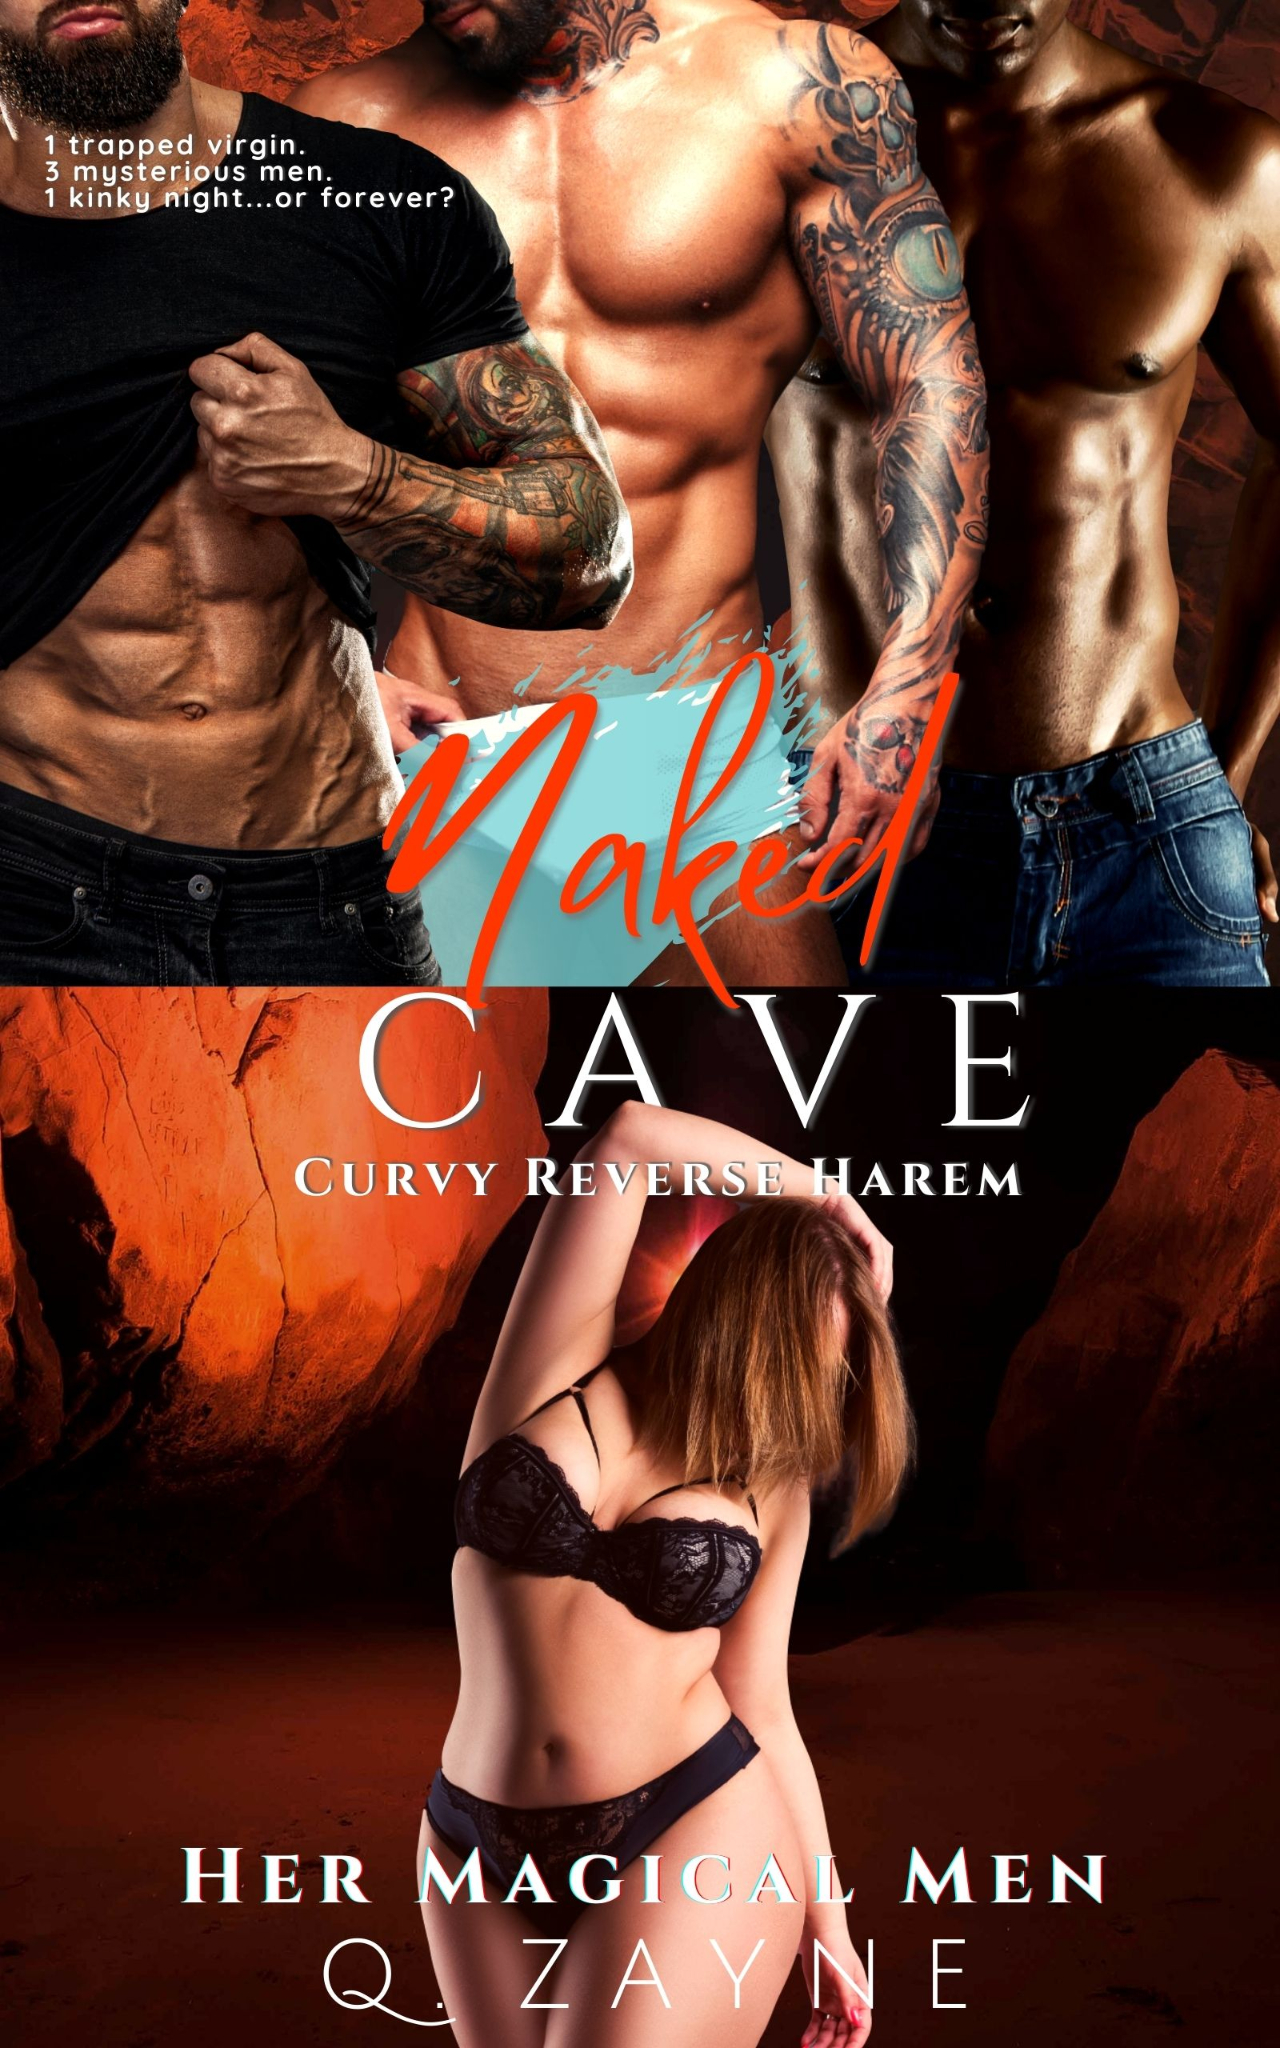 Naked Cave-1-1